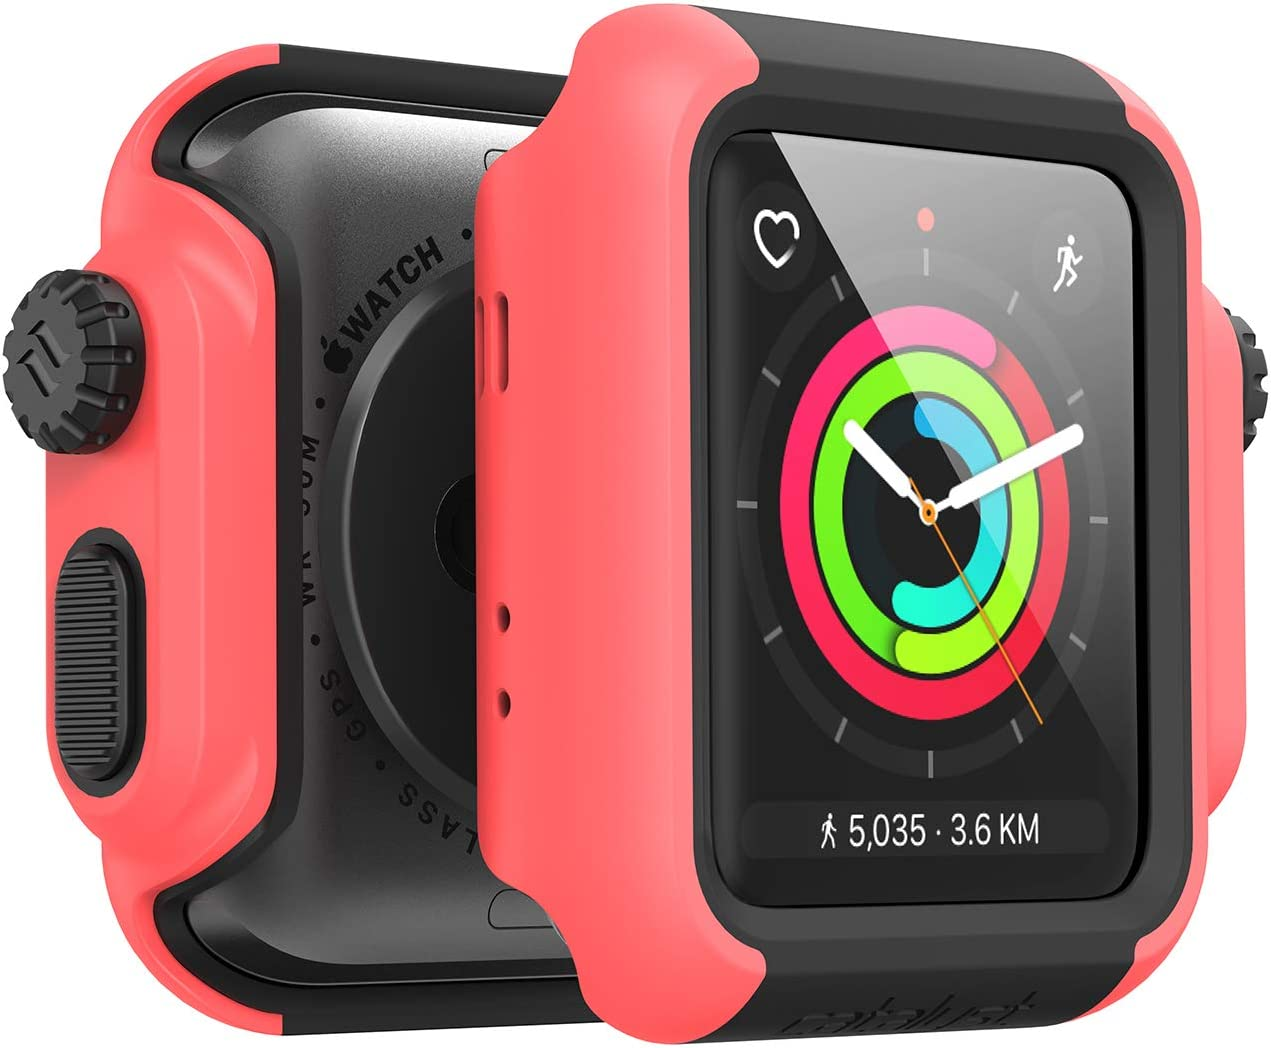 Designed for Apple Watch Impact Case 38mm Series 3 & 2 Rugged Protective Case by Catalyst, Drop Proof Shock Proof Impact Resistant Designed for Apple Watch Case, Coral